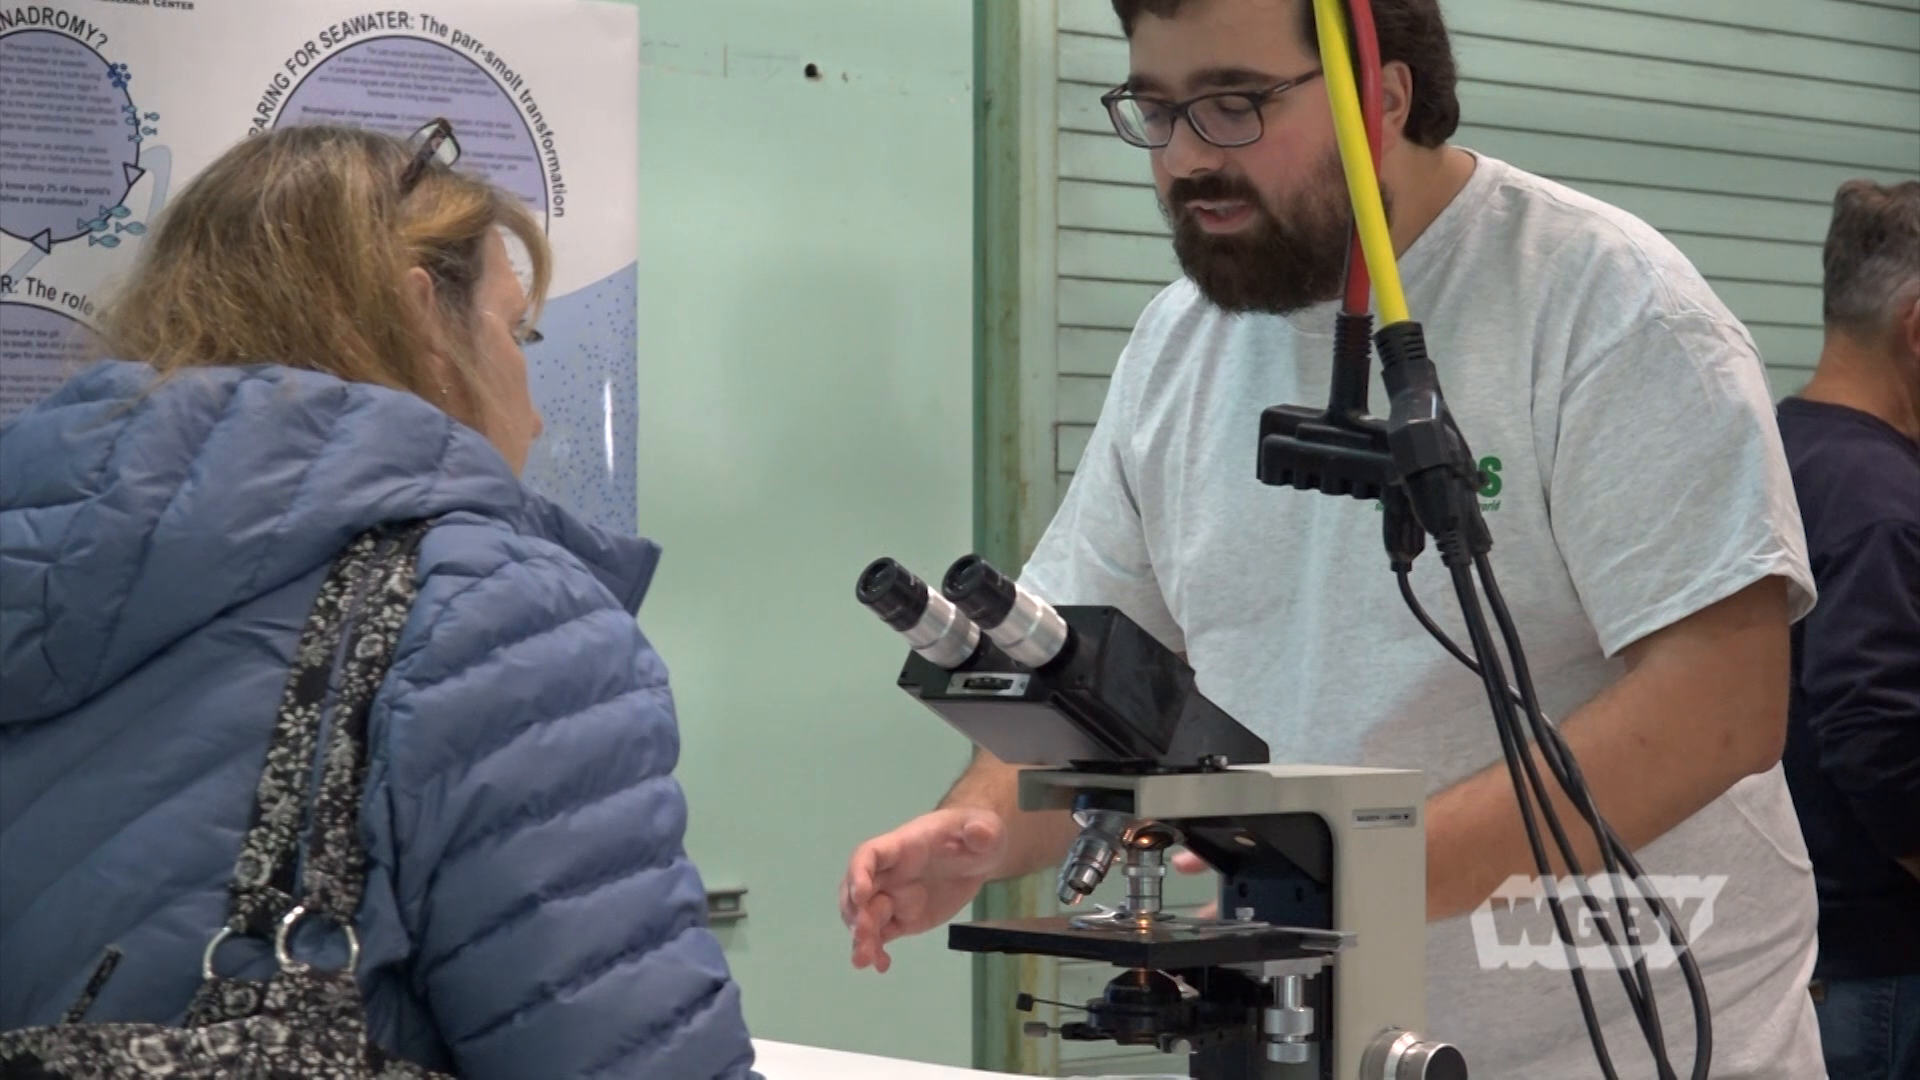 The Silvo Conte Research Center, part of the USGS, hosted an open house to give the public a chance to see what goes on in the federal research facility.